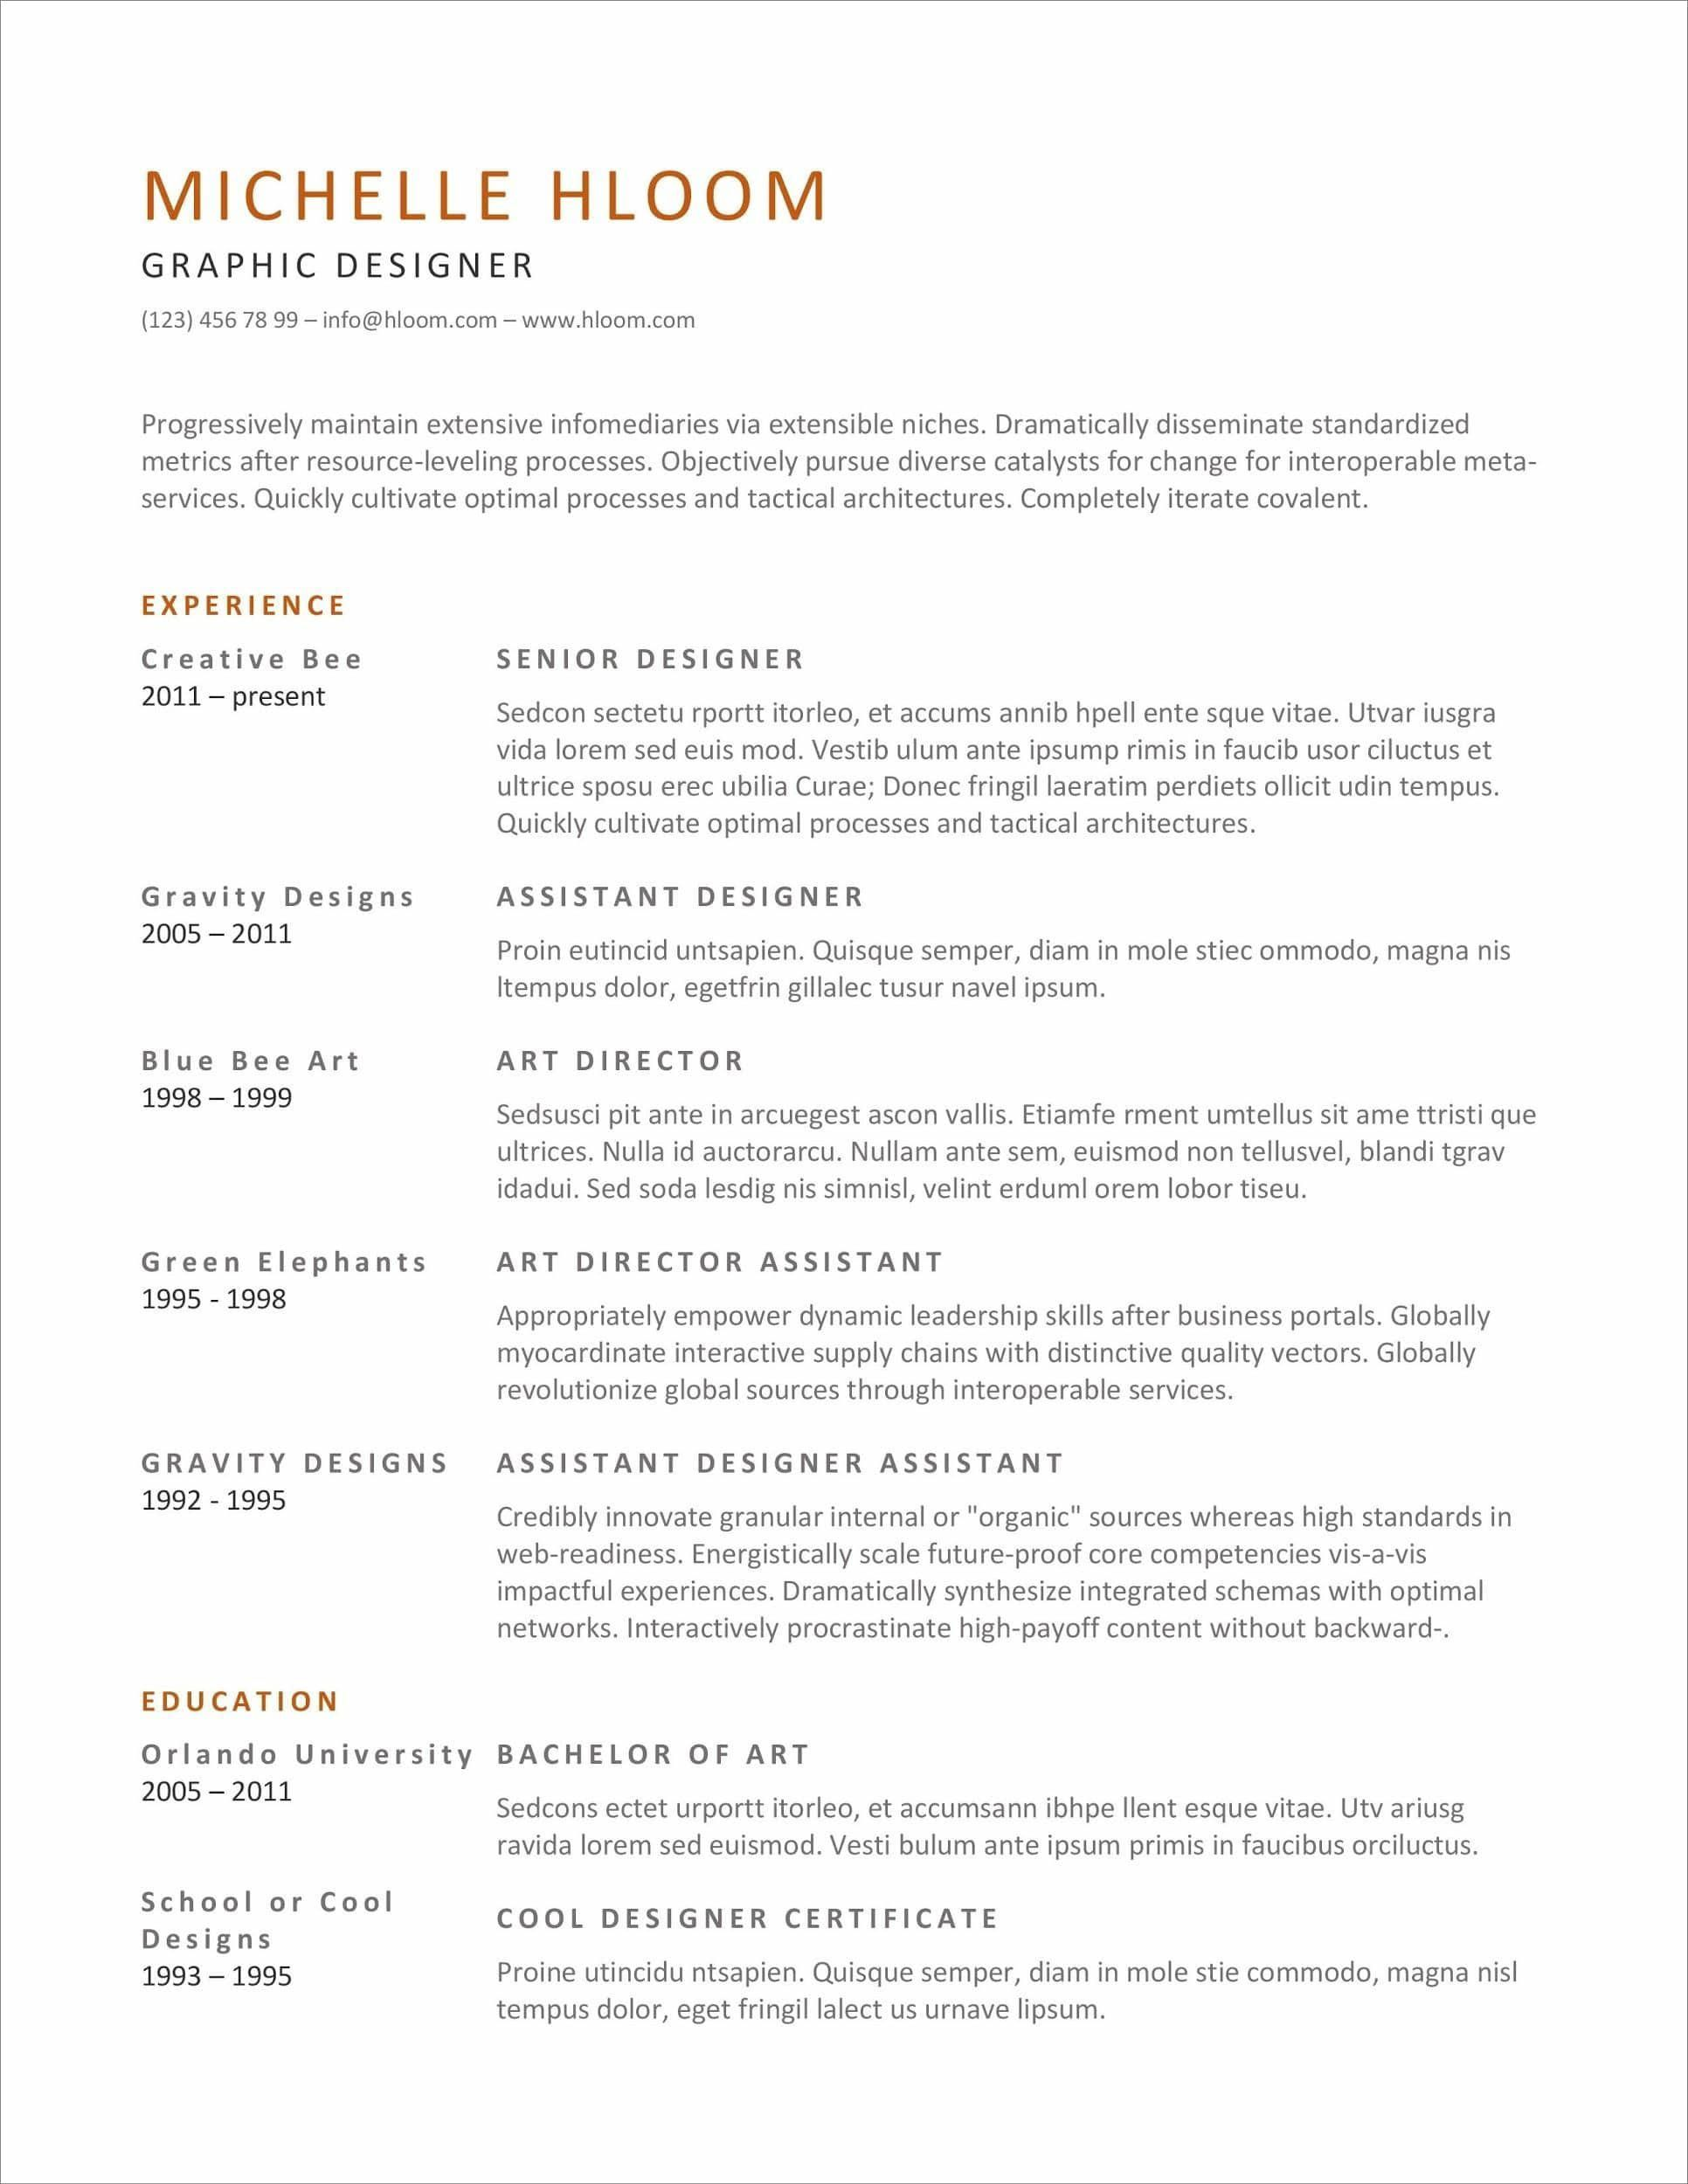 007 Marvelou Word Template For Resume High Def  Resumes M Free Best Document DownloadFull